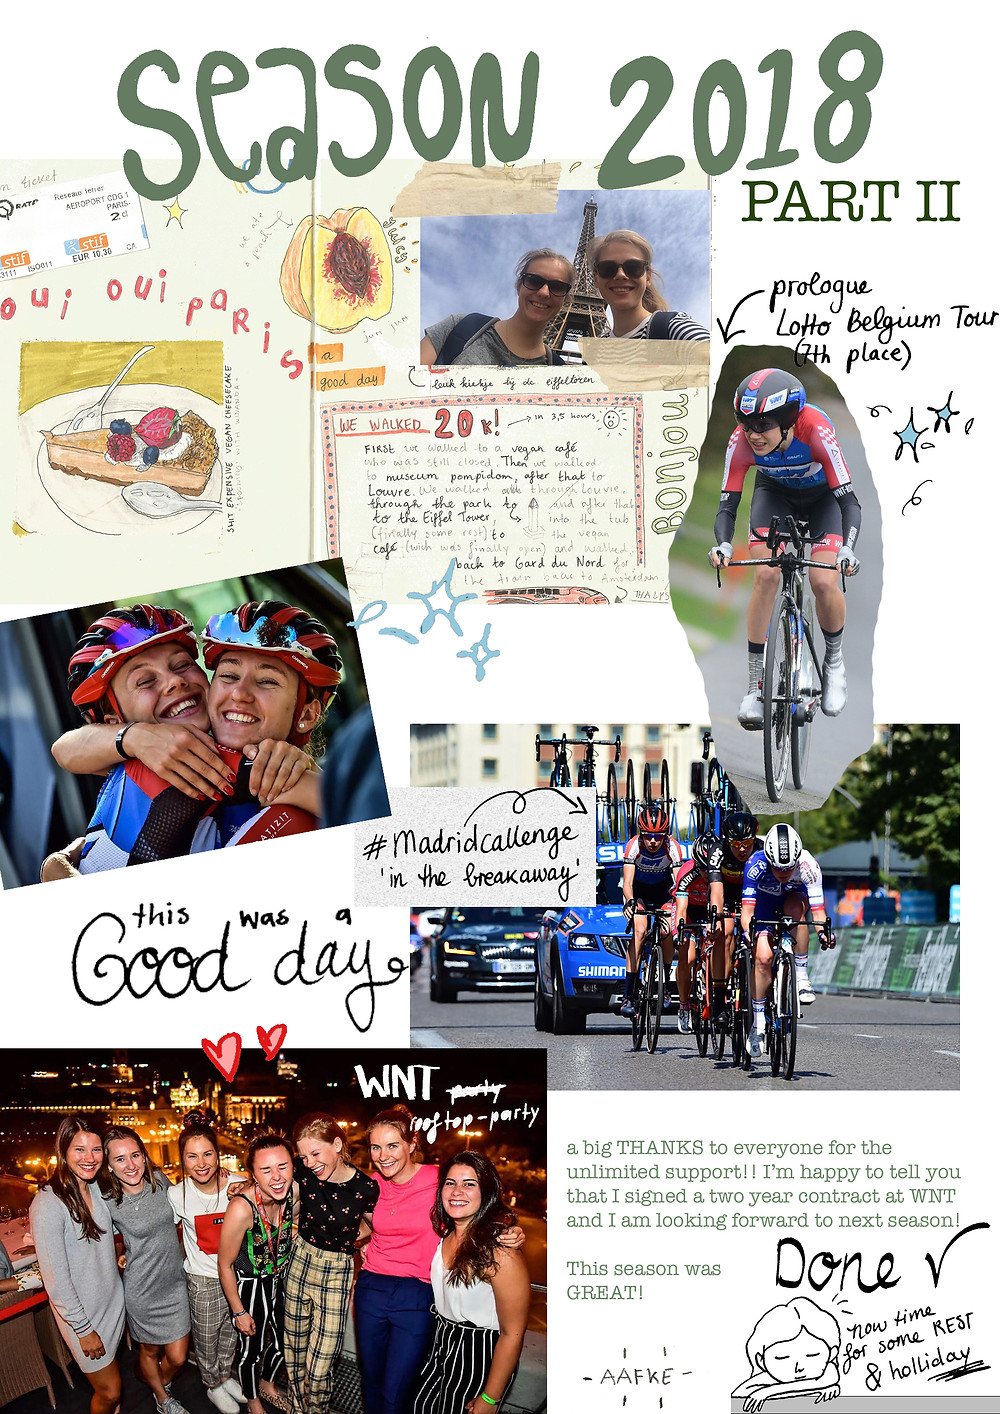 a scrapbook page from season 2018, part 2 from Aafke Soet cyclist for WNT-Rotor